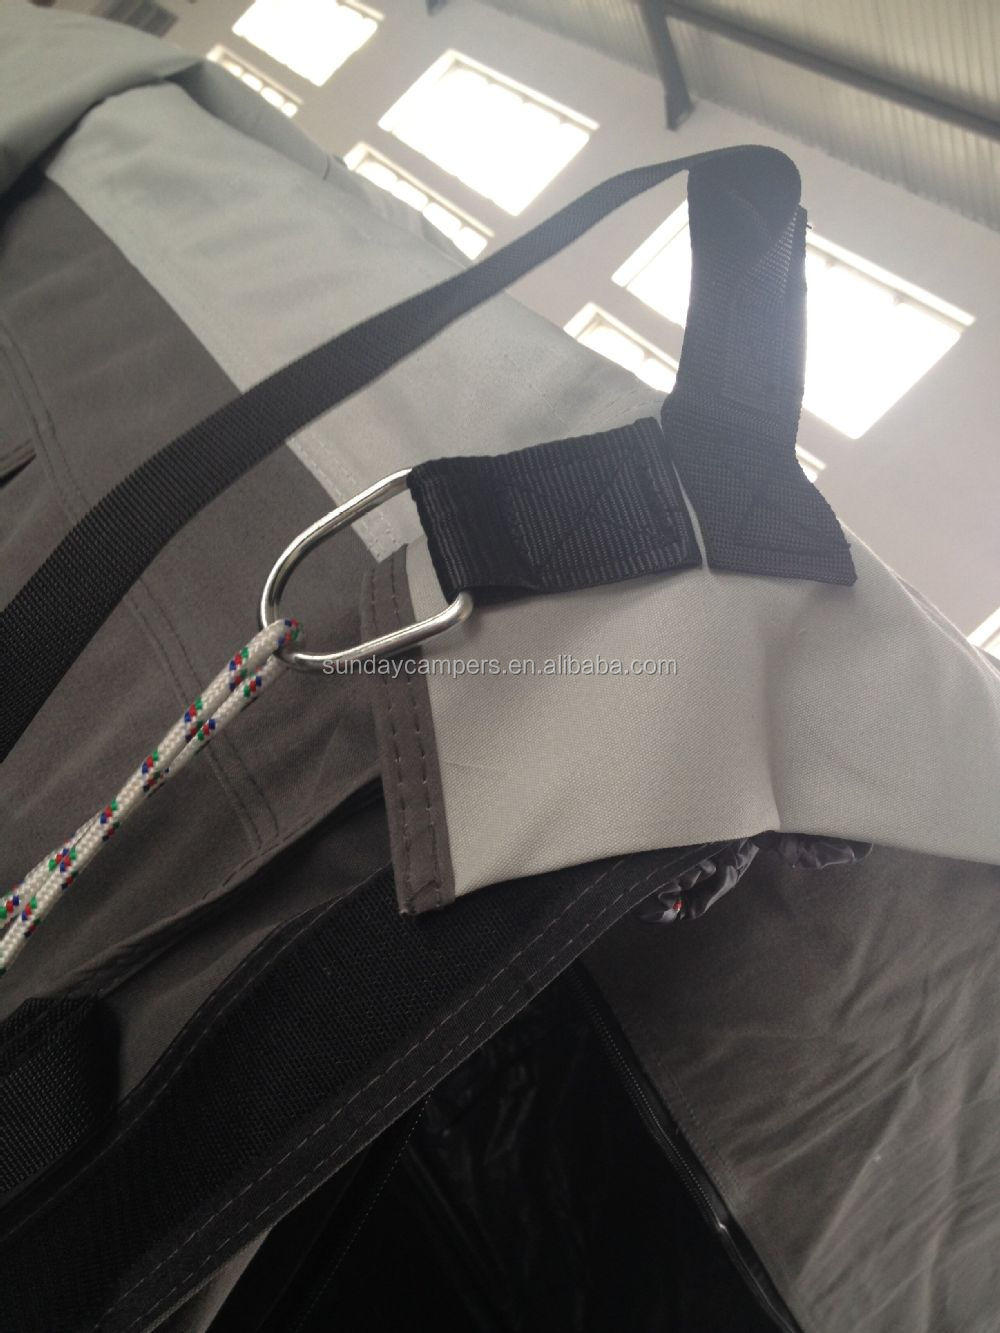 guide ropes on a tent